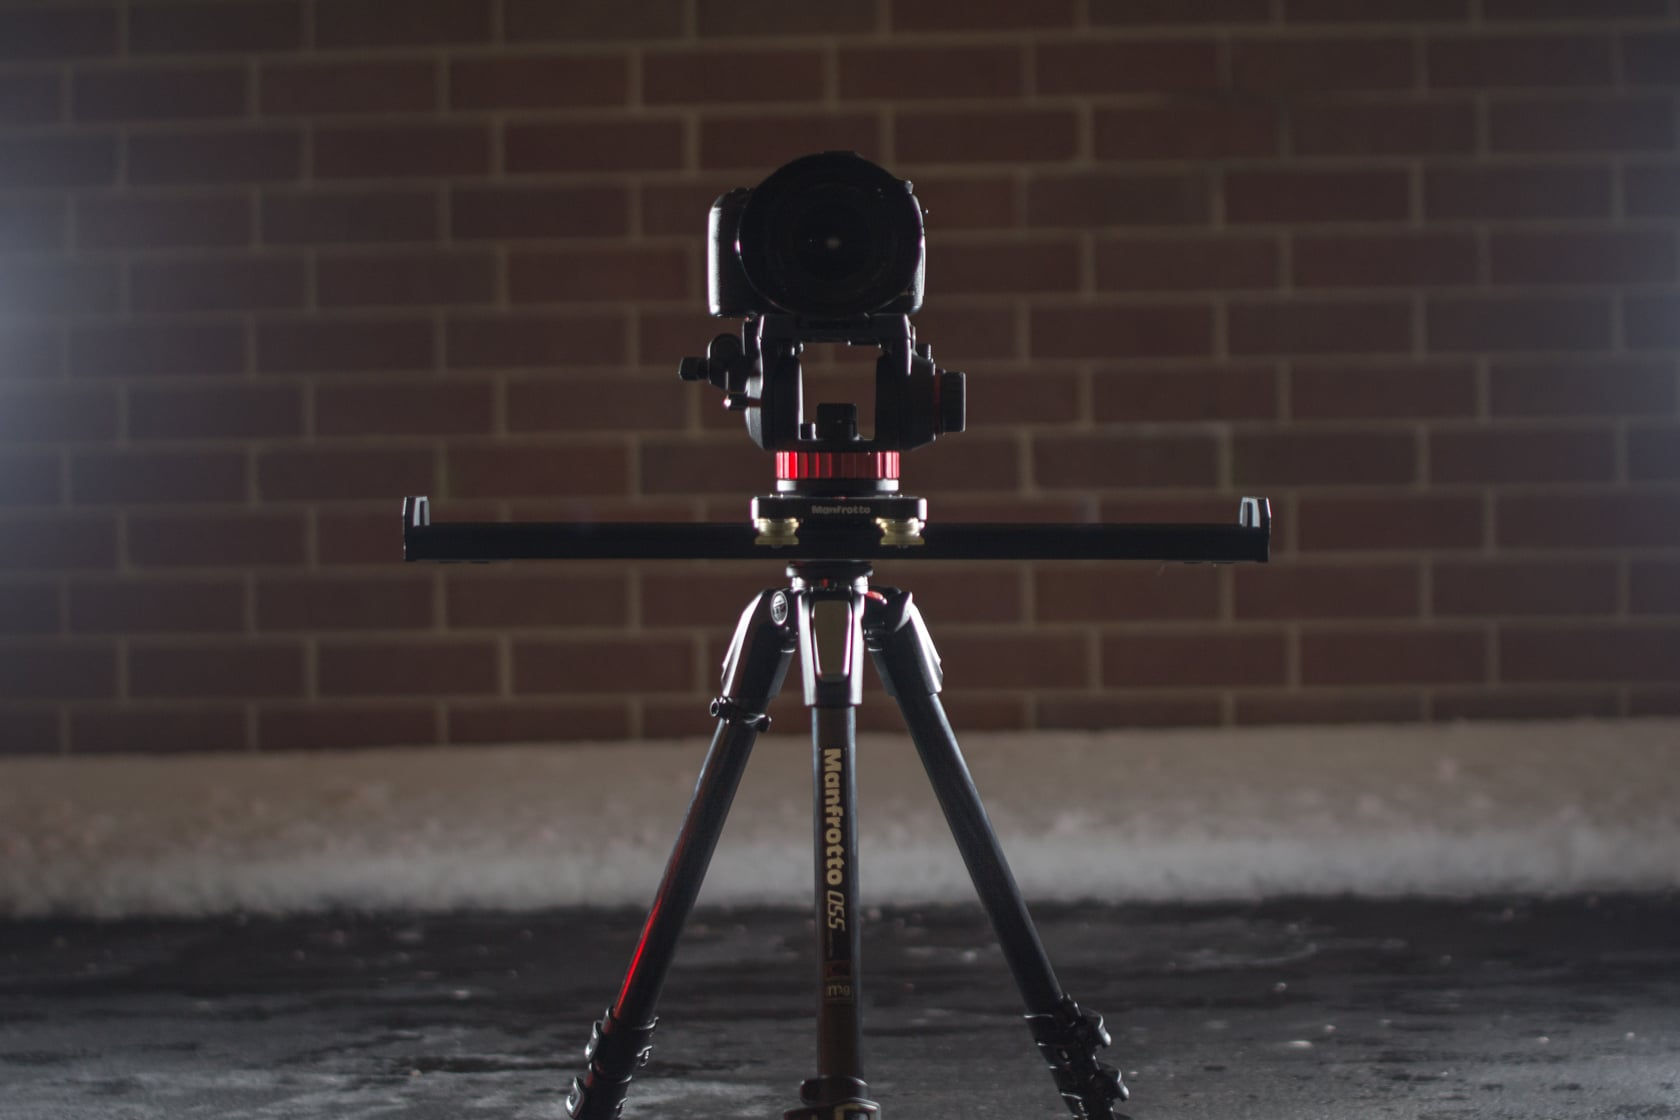 {Pictured: Canon 5dmiii, Manfrotto 502 fluid head, Manfrotto 60cm slider, Manfrotto 055 CF tripod}